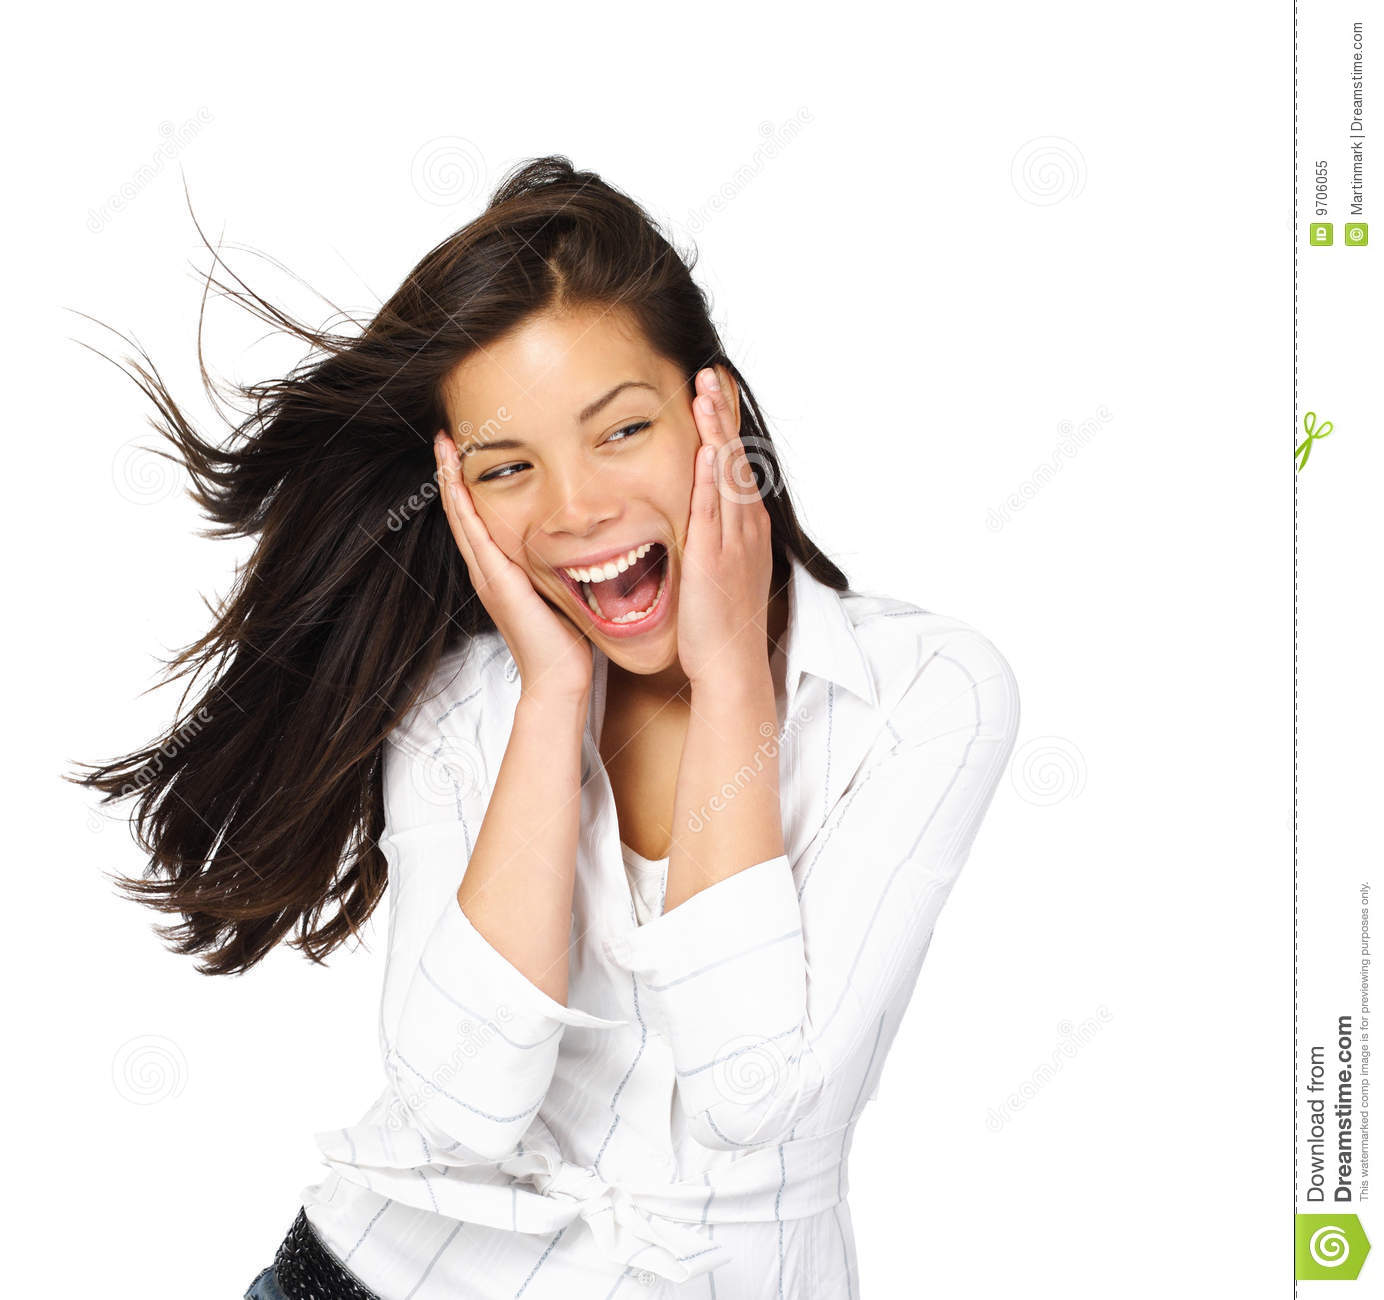 excited-woman-9706055.jpg